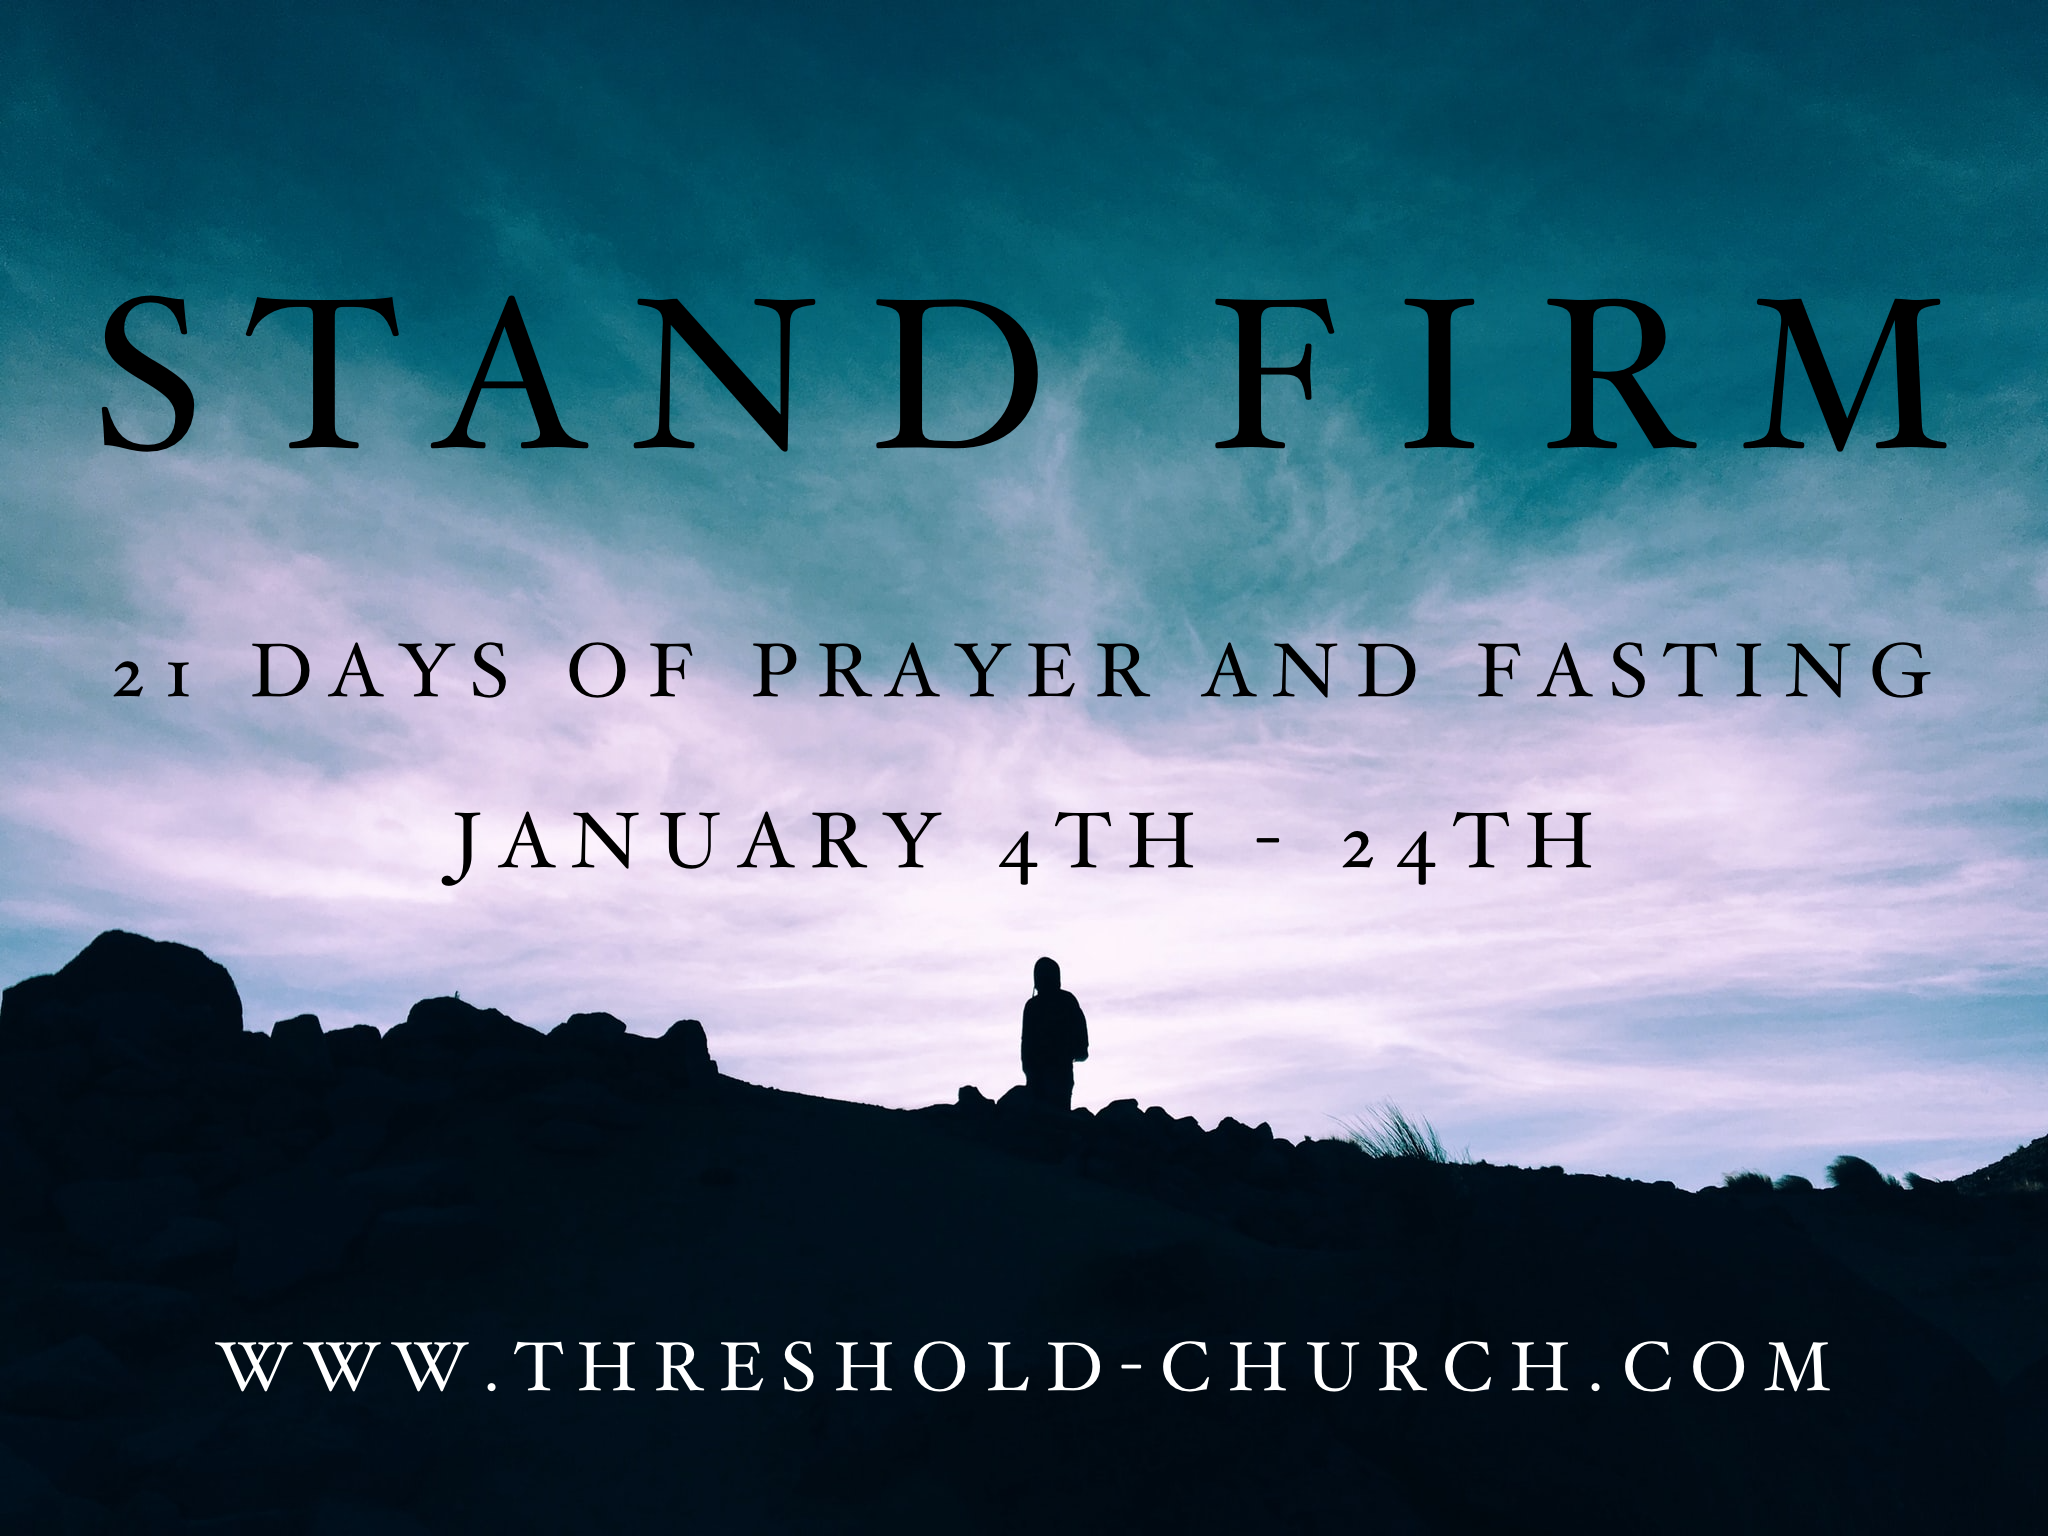 Stand Firm: 21 Days of Prayer and Fasting to Start the New Year!